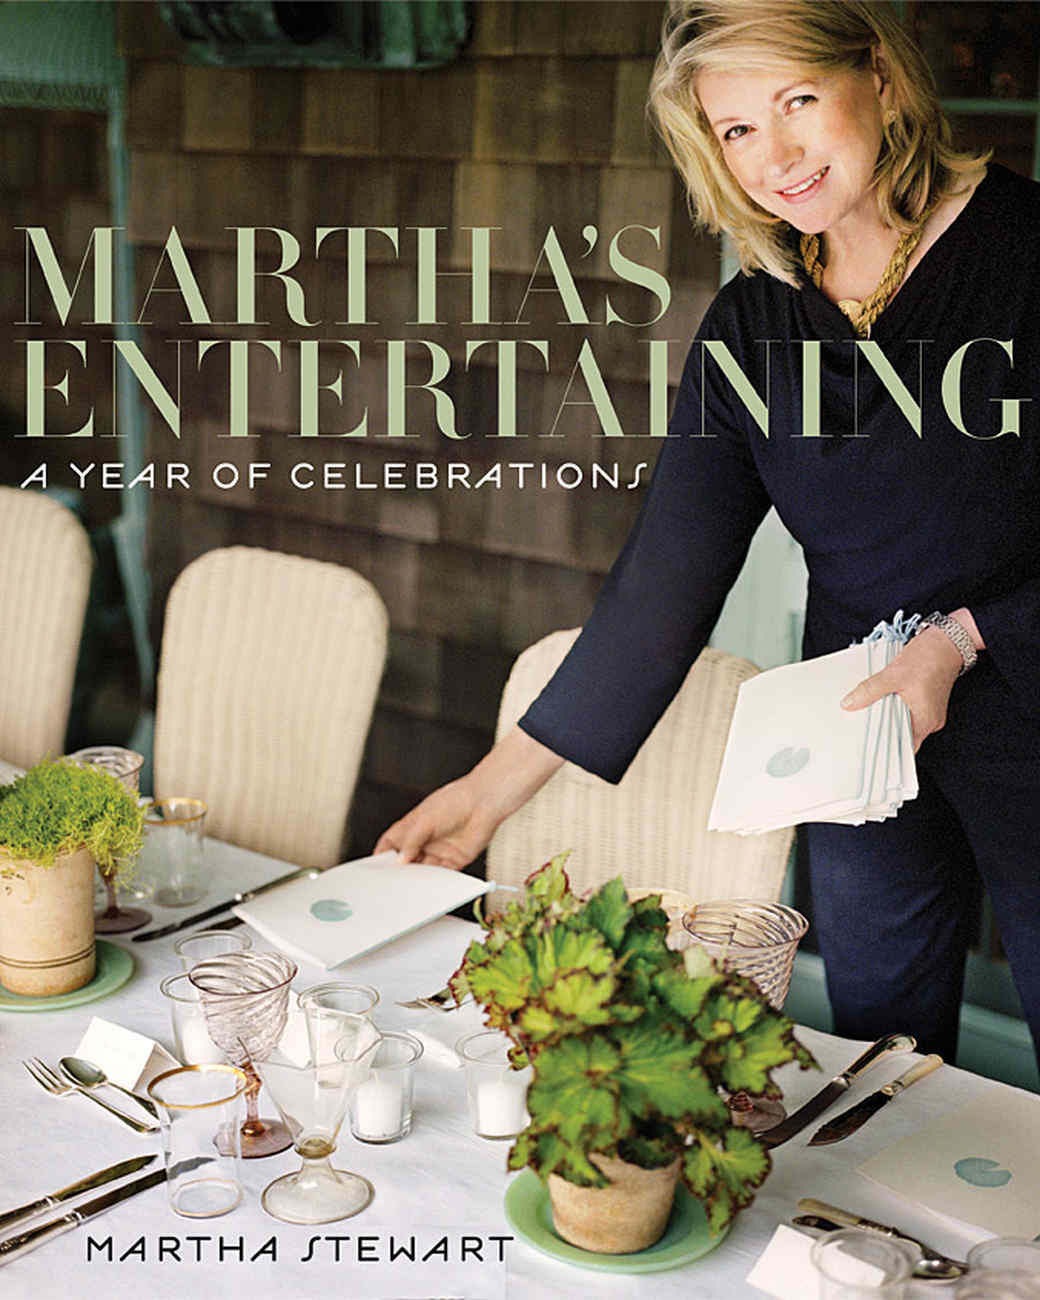 marthas-entertaining-book-cover.jpg